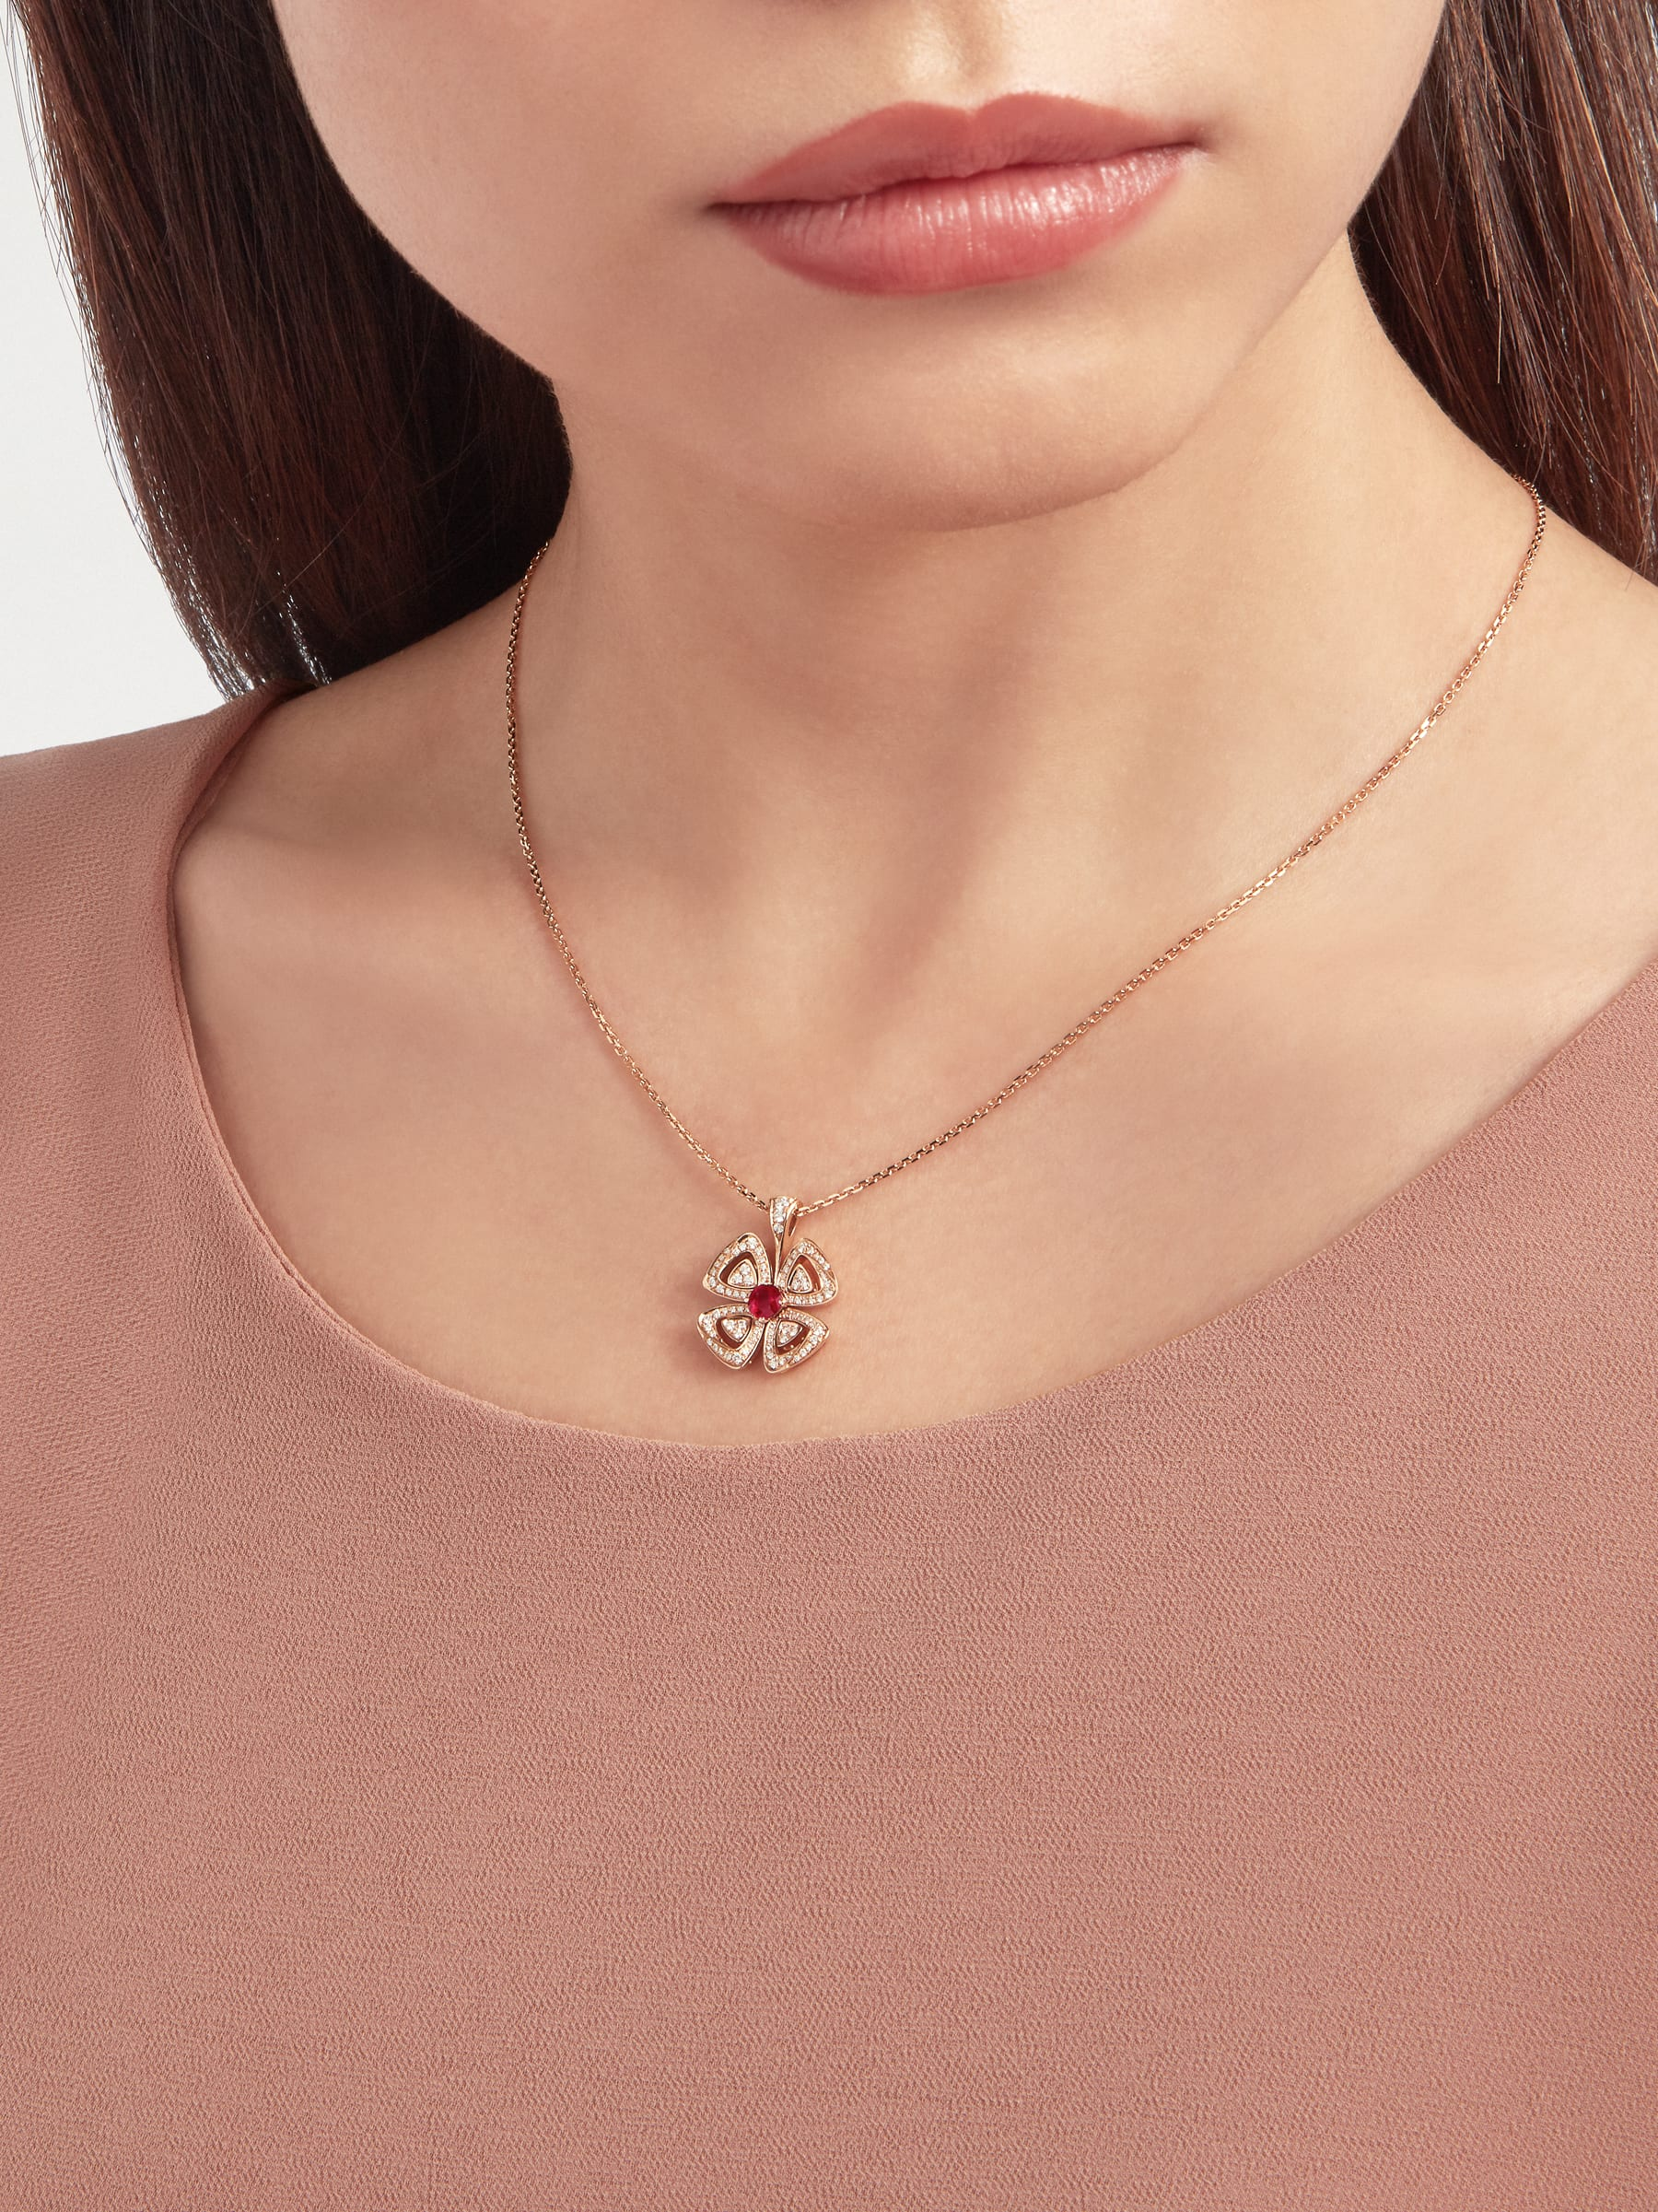 Fiorever 18 kt rose gold pendant necklace set with a central brilliant-cut ruby (0.35 ct) and pavé diamonds (0.31 ct) 358428 image 1